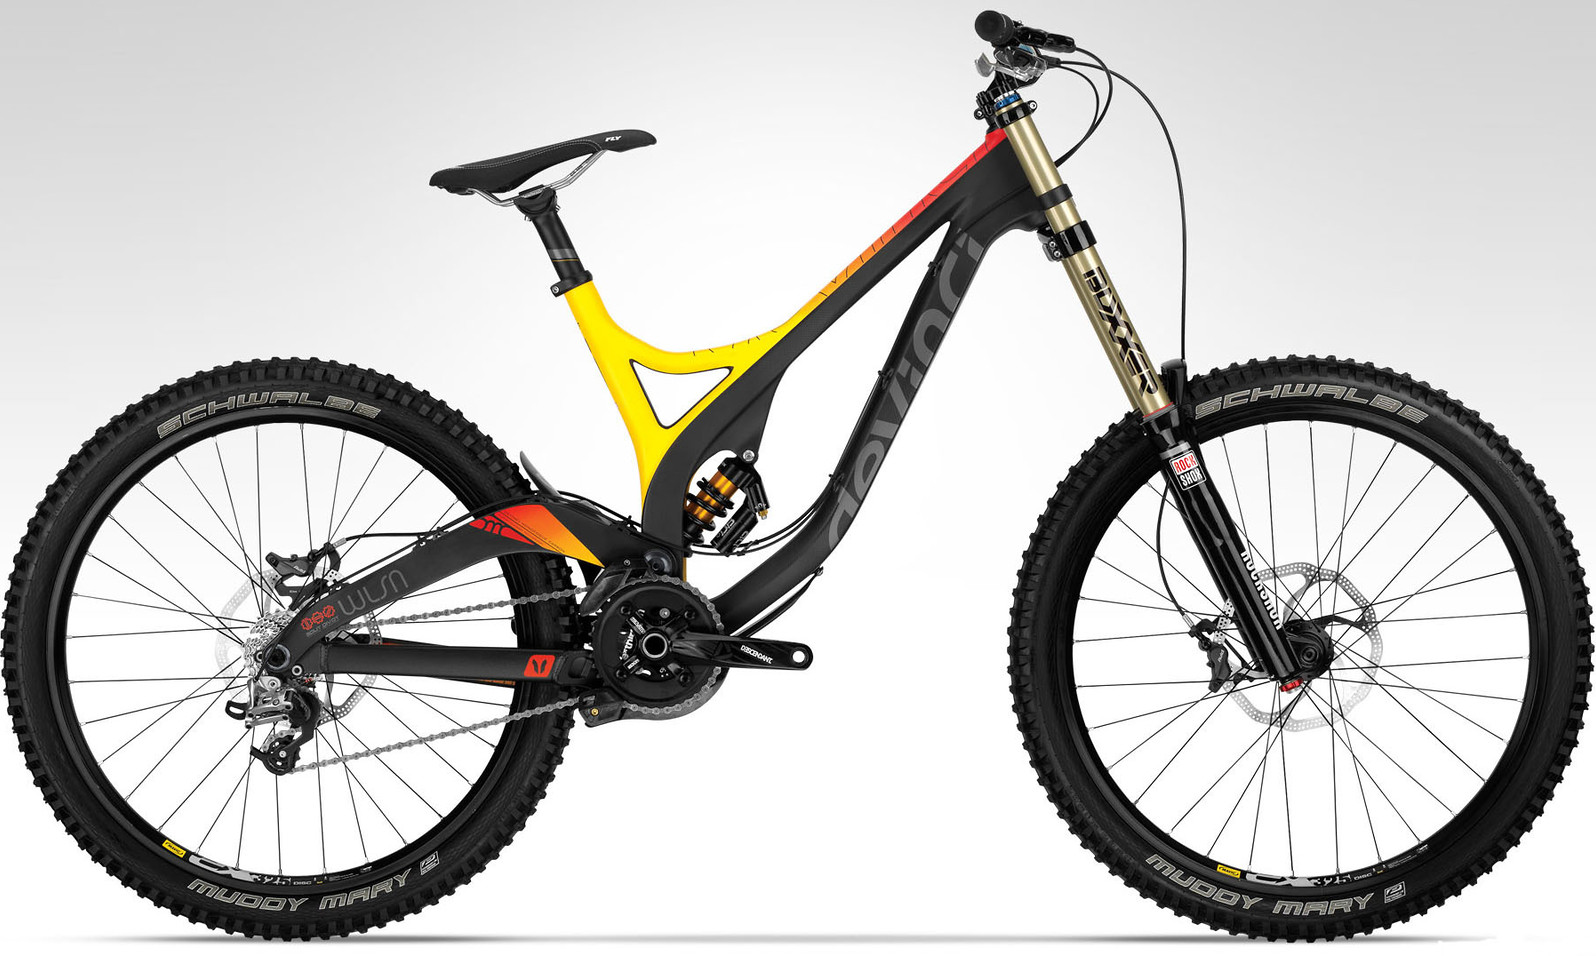 2015 Devinci Wilson Carbon Rc Bike Reviews Comparisons